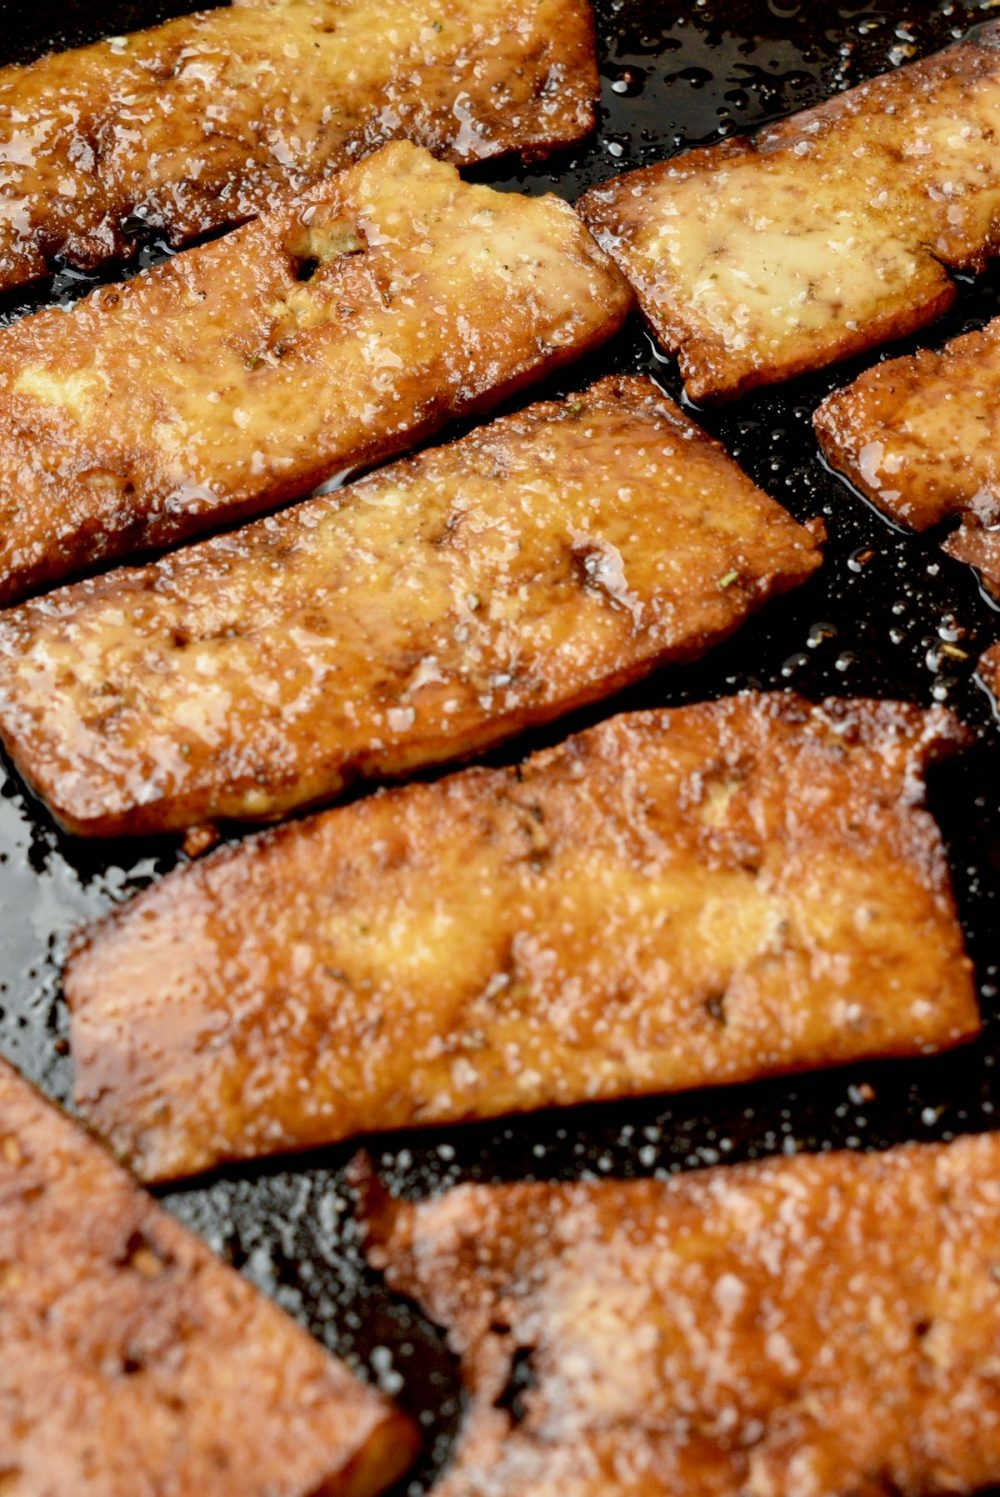 A close up of some slices of marinated tofu being fried golden brown in a frying pan.